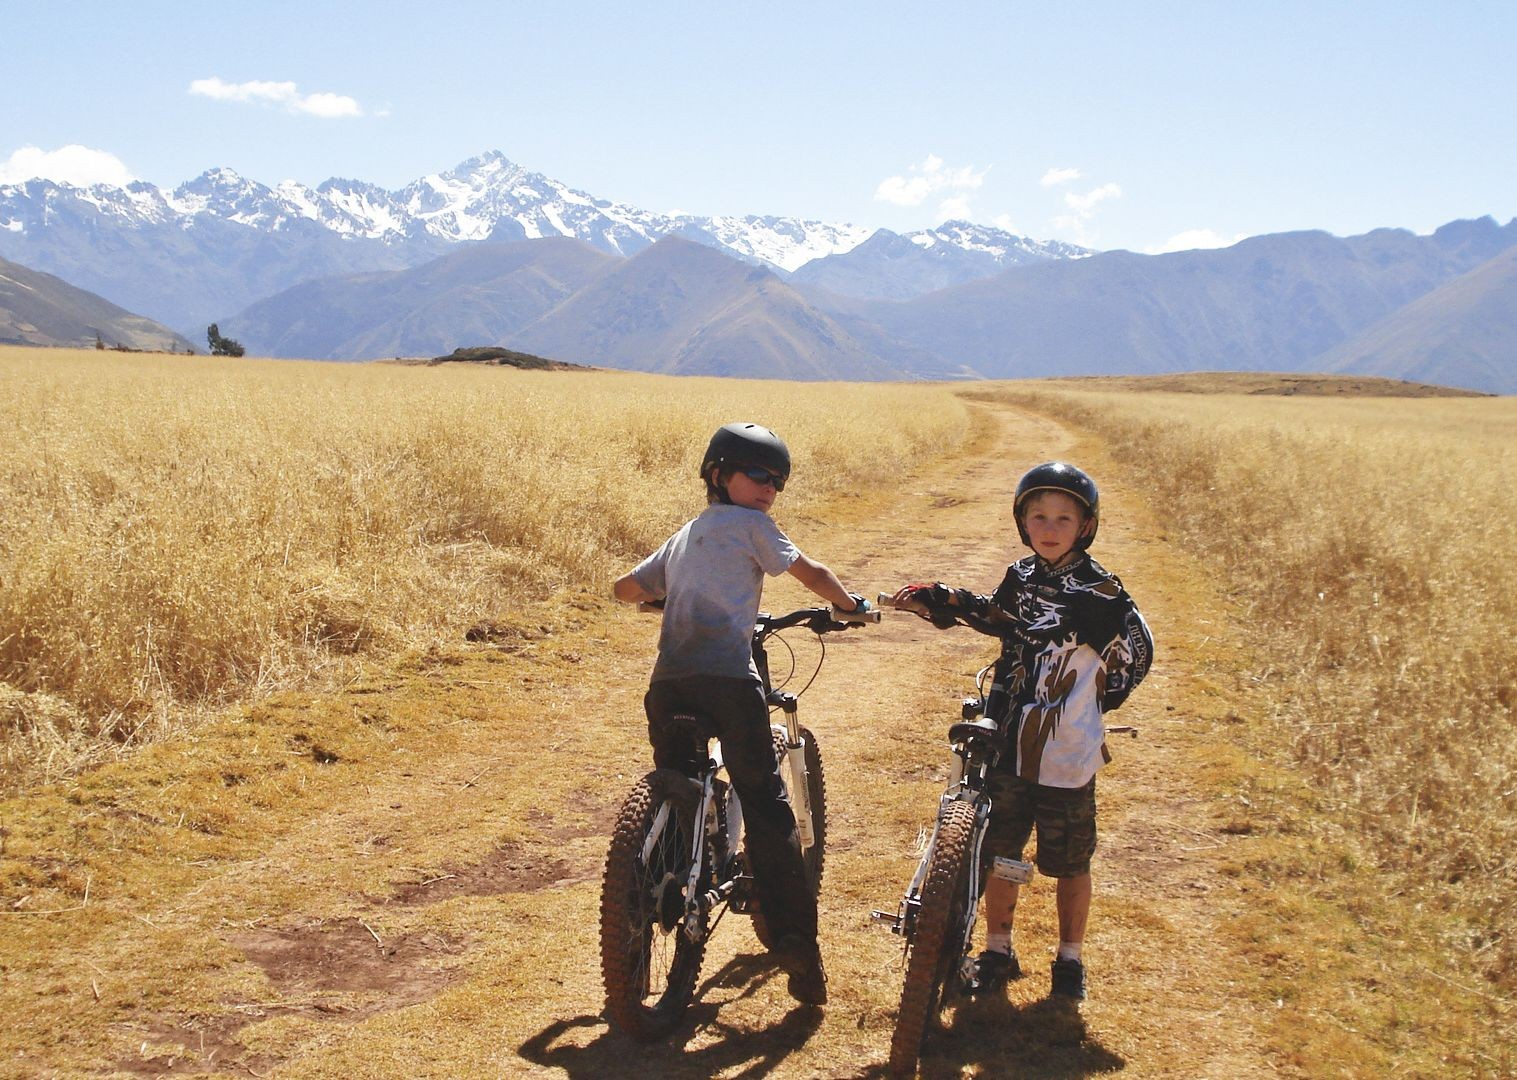 maras-salt-pans-andean-adventurer-peru-guided-family-cycling-holiday.JPG - Peru - Andean Adventure - Guided Family Cycling Holiday - Family Cycling